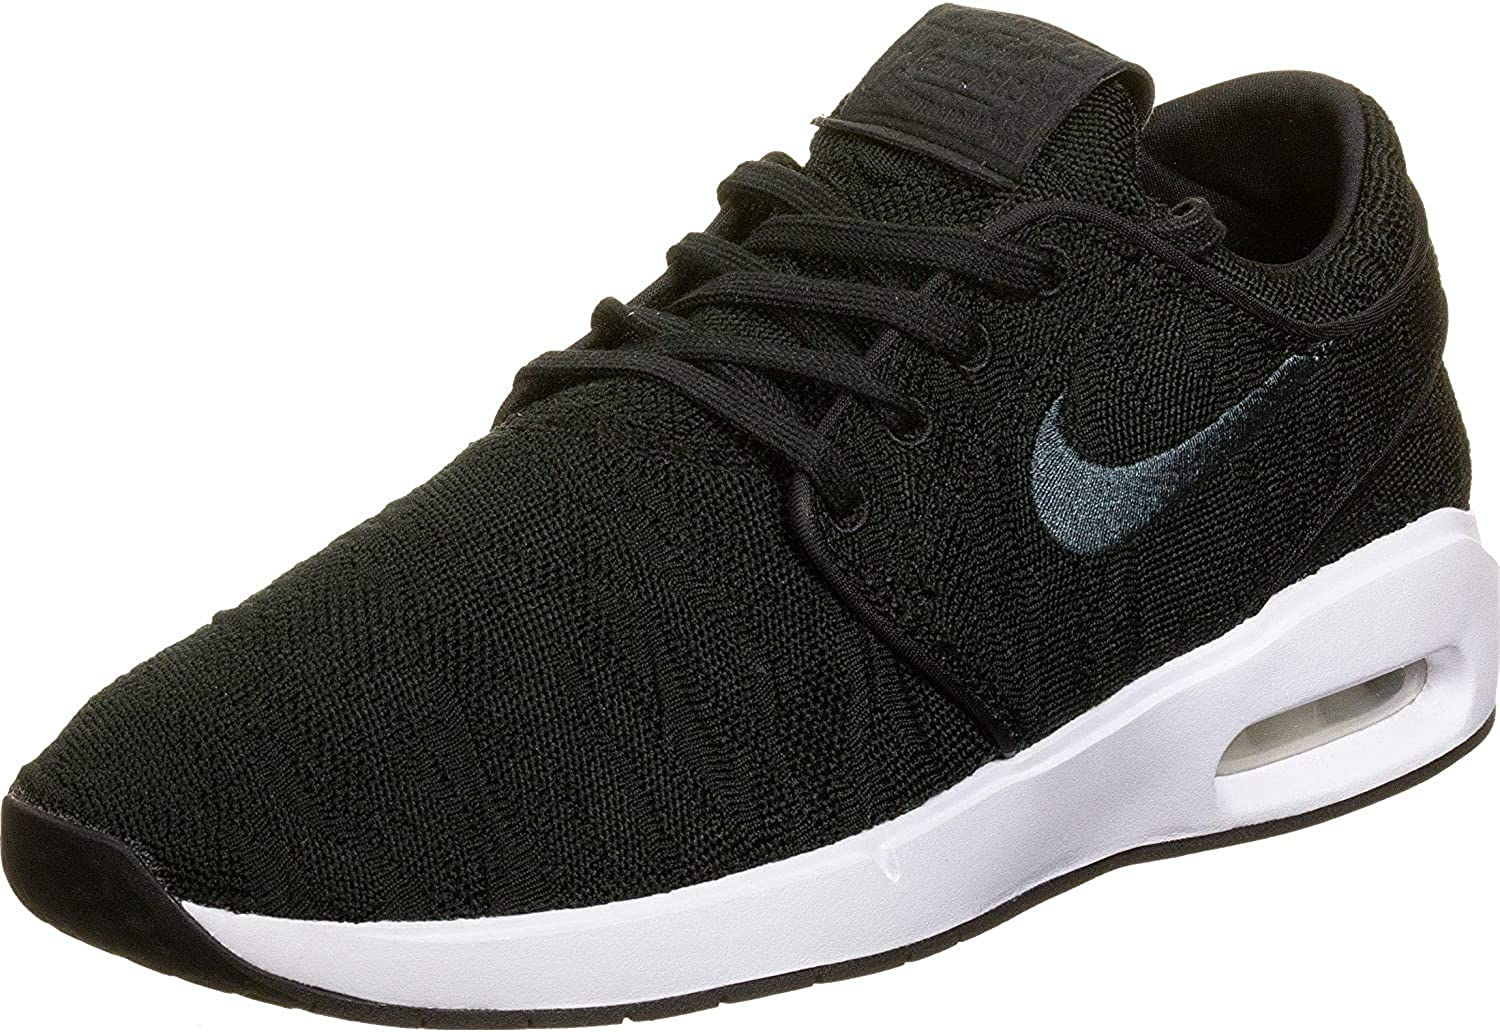 Nike Herren Sb Air Max Janoski 2 Walking Shoe Black Anthracite White